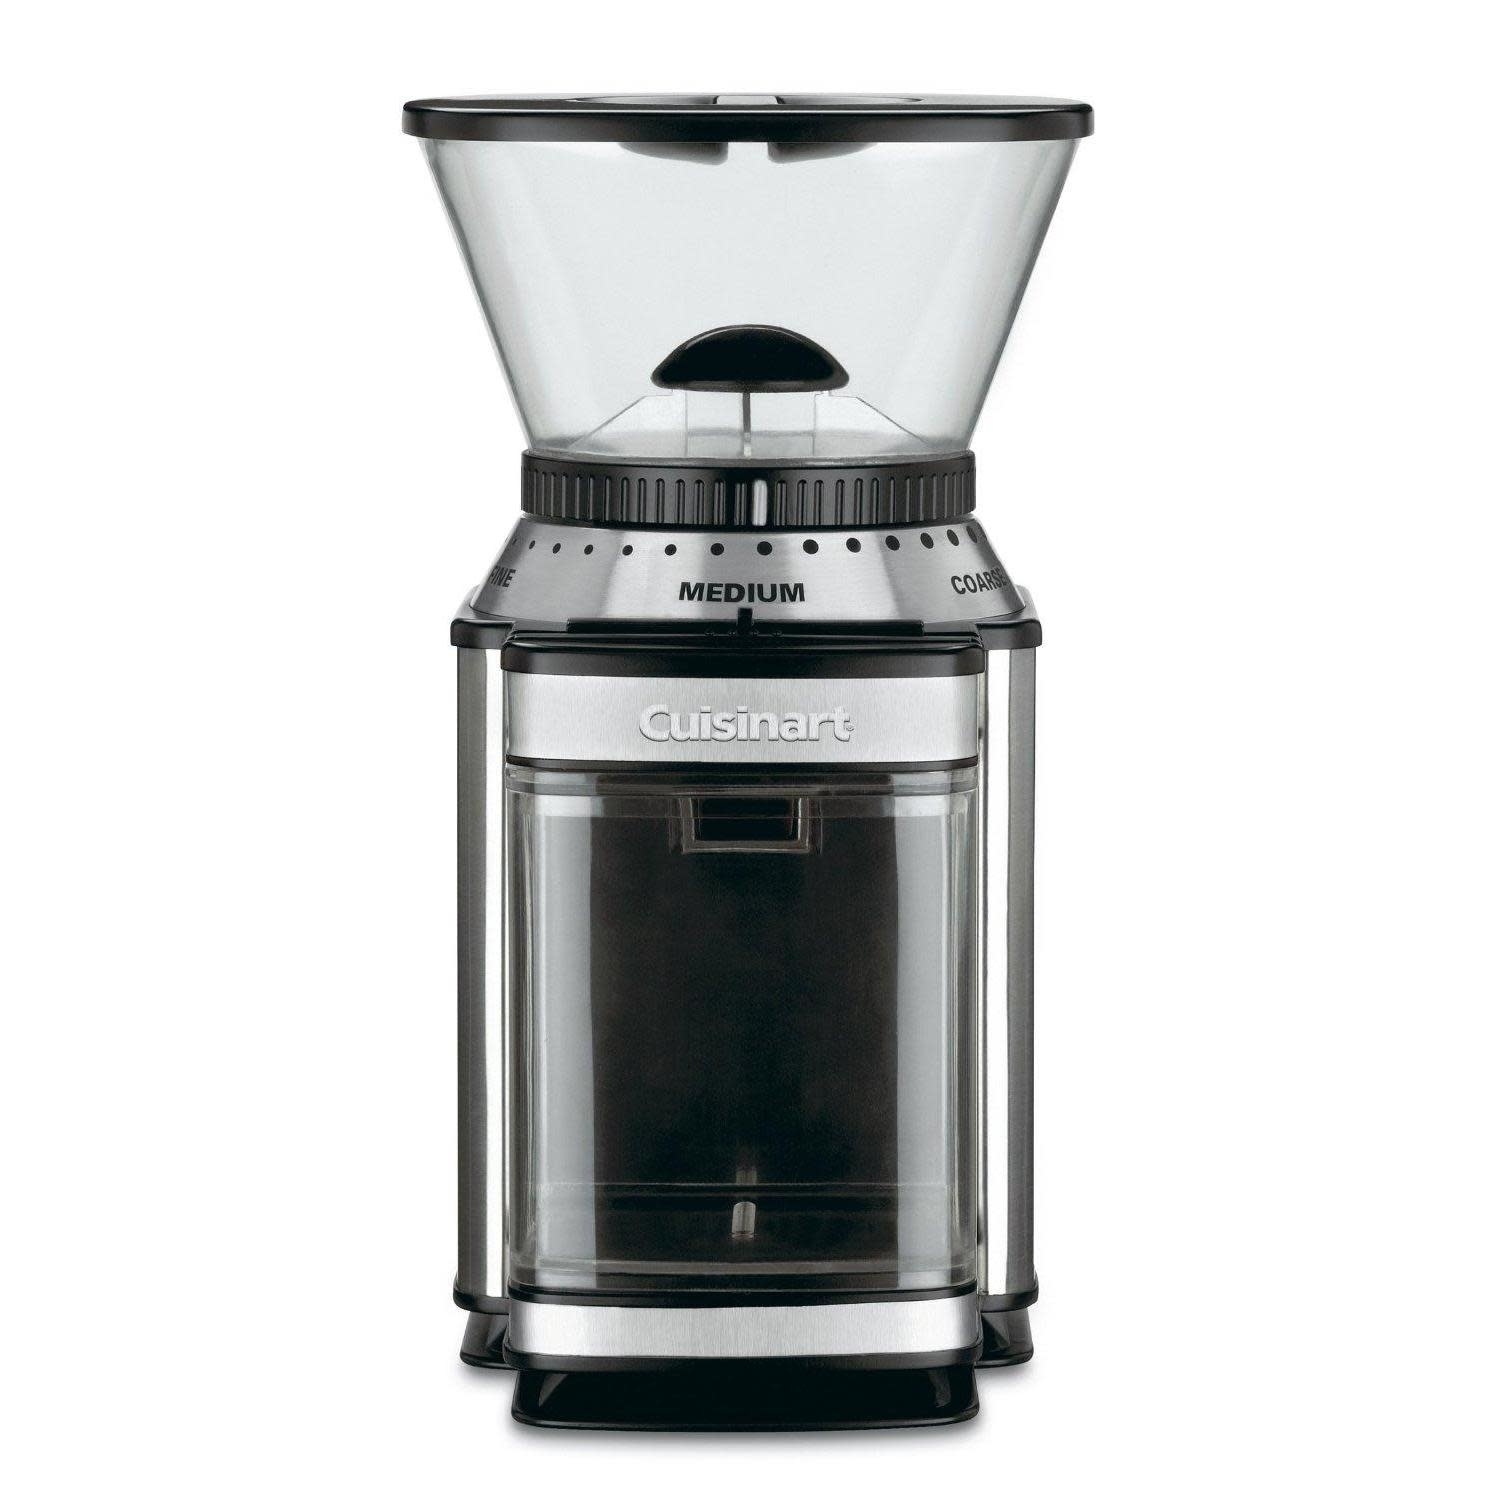 Cuisinart Electric Coffee Grinder Burr Mill Supreme